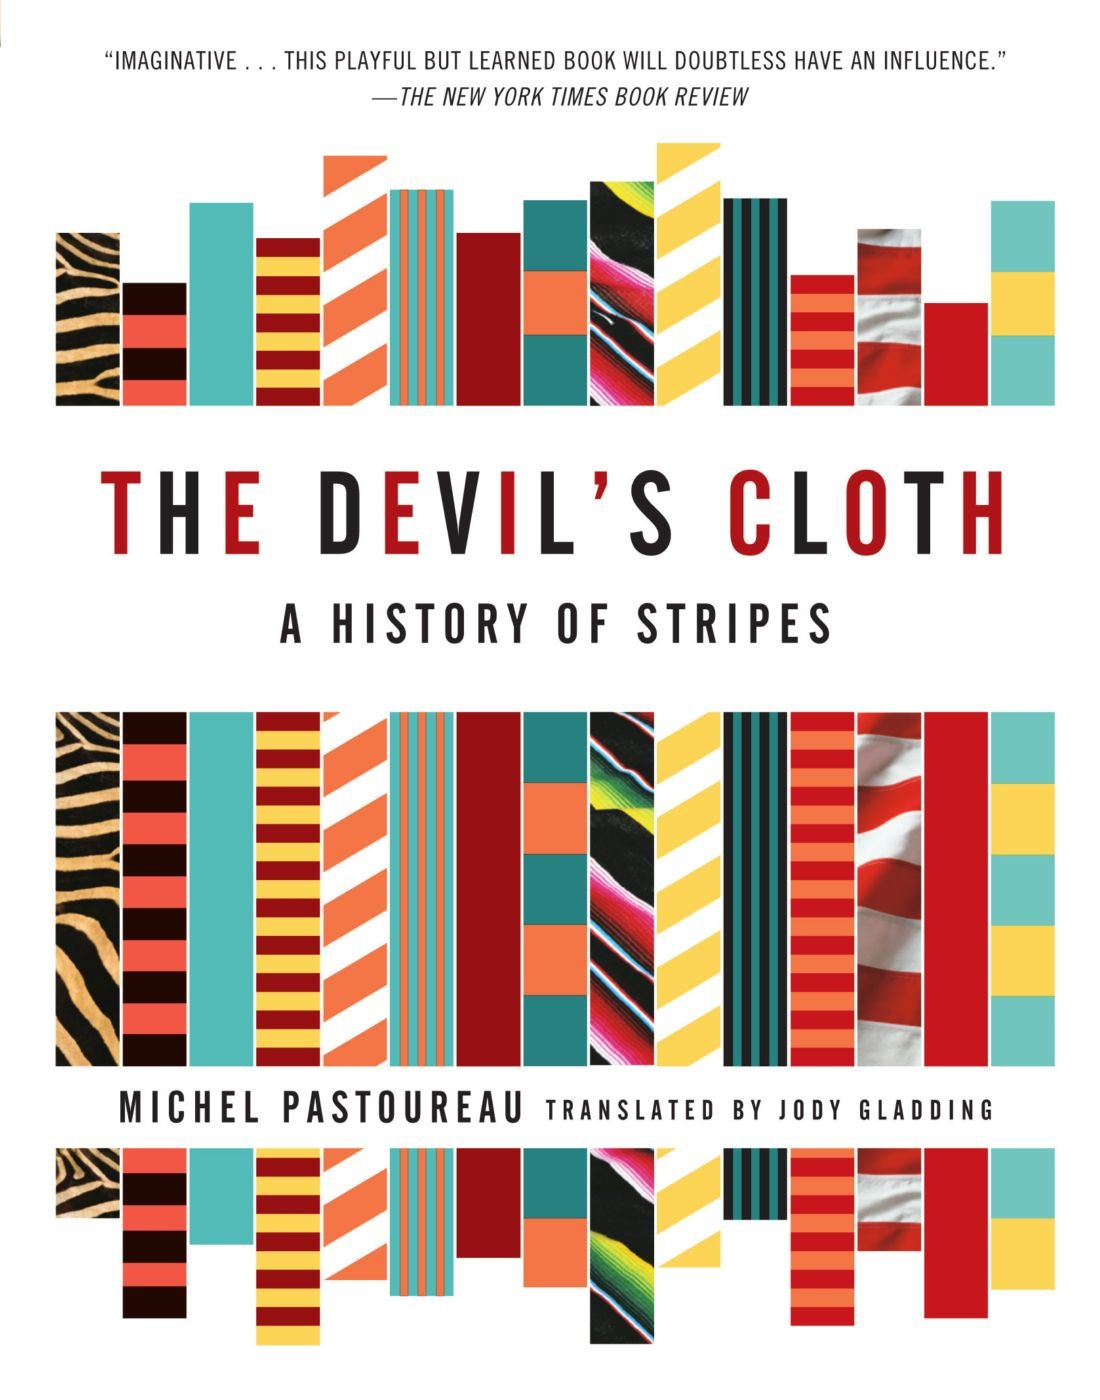 The Devil's Cloth: A History of Stripes by Michel Pastoureau - Book at Kavi Gupta Editions